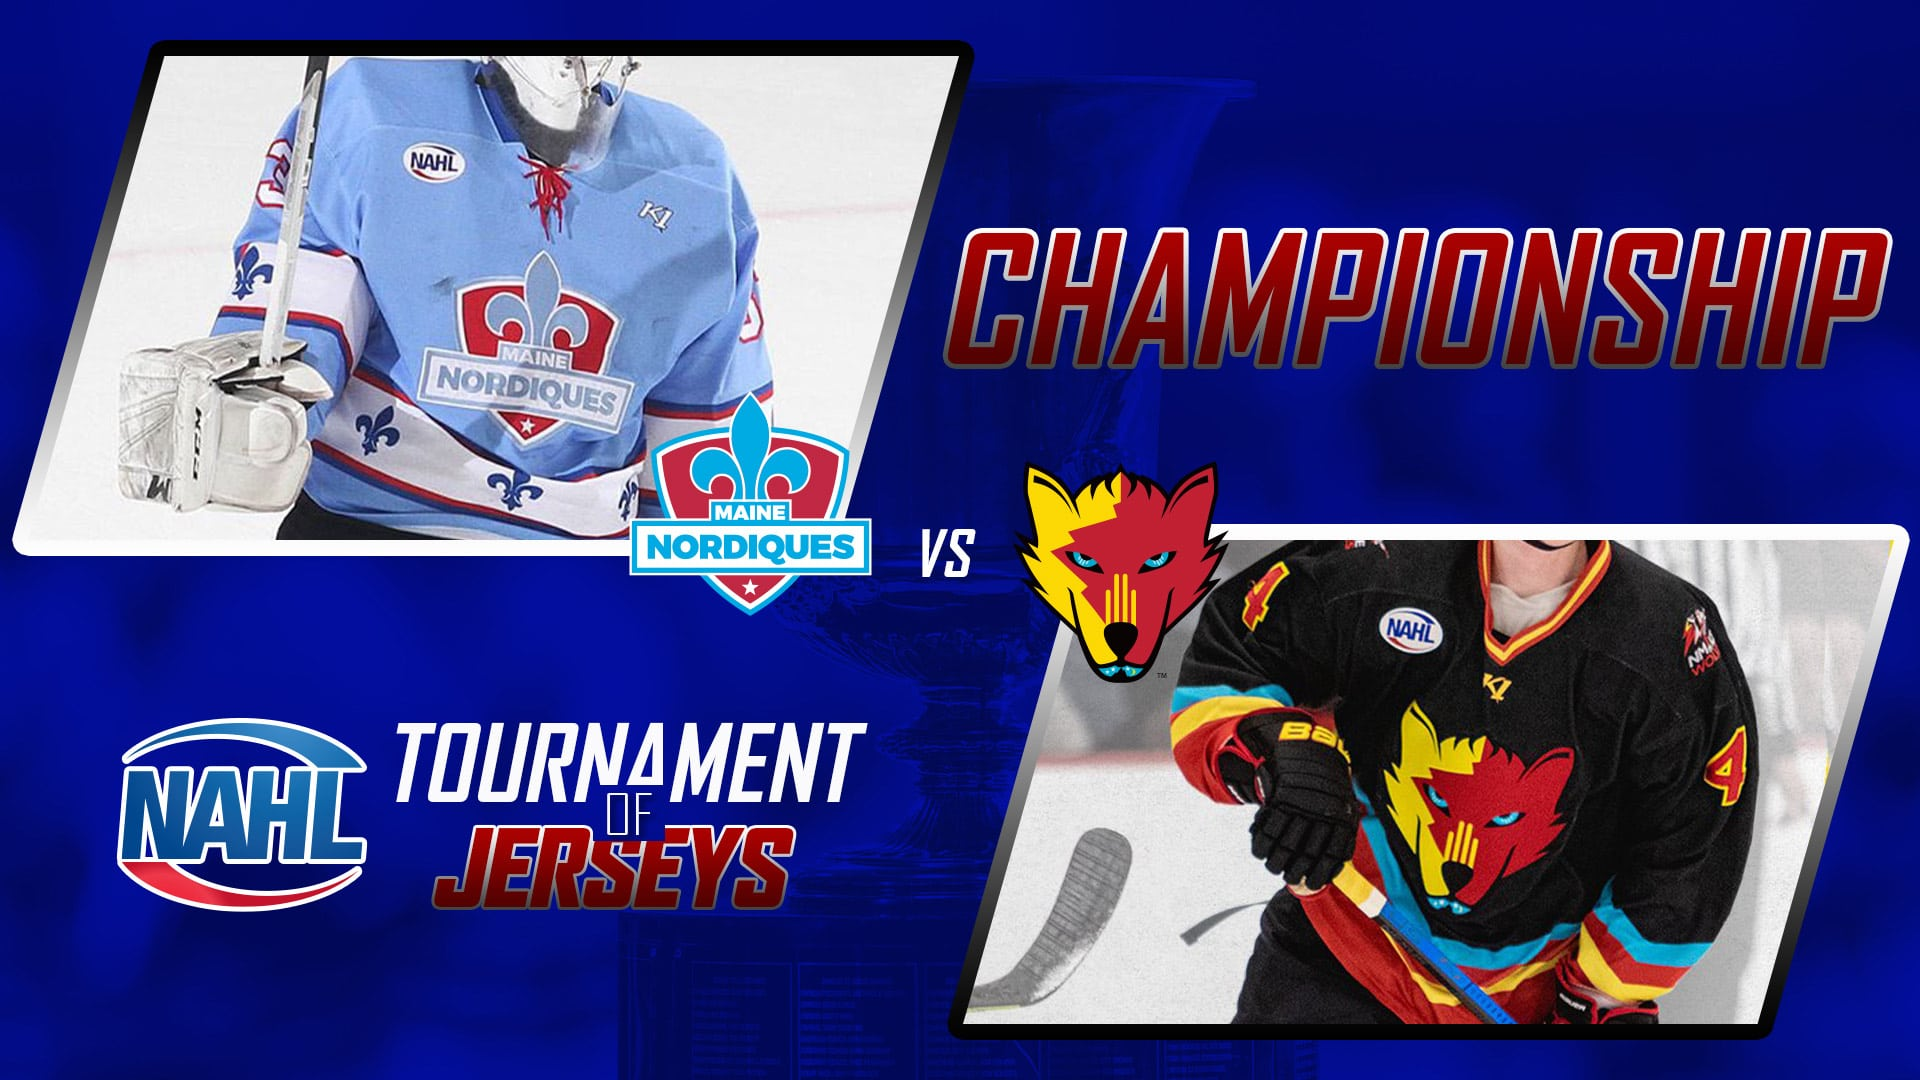 The Nordiques face the ice wolves in the tournament final